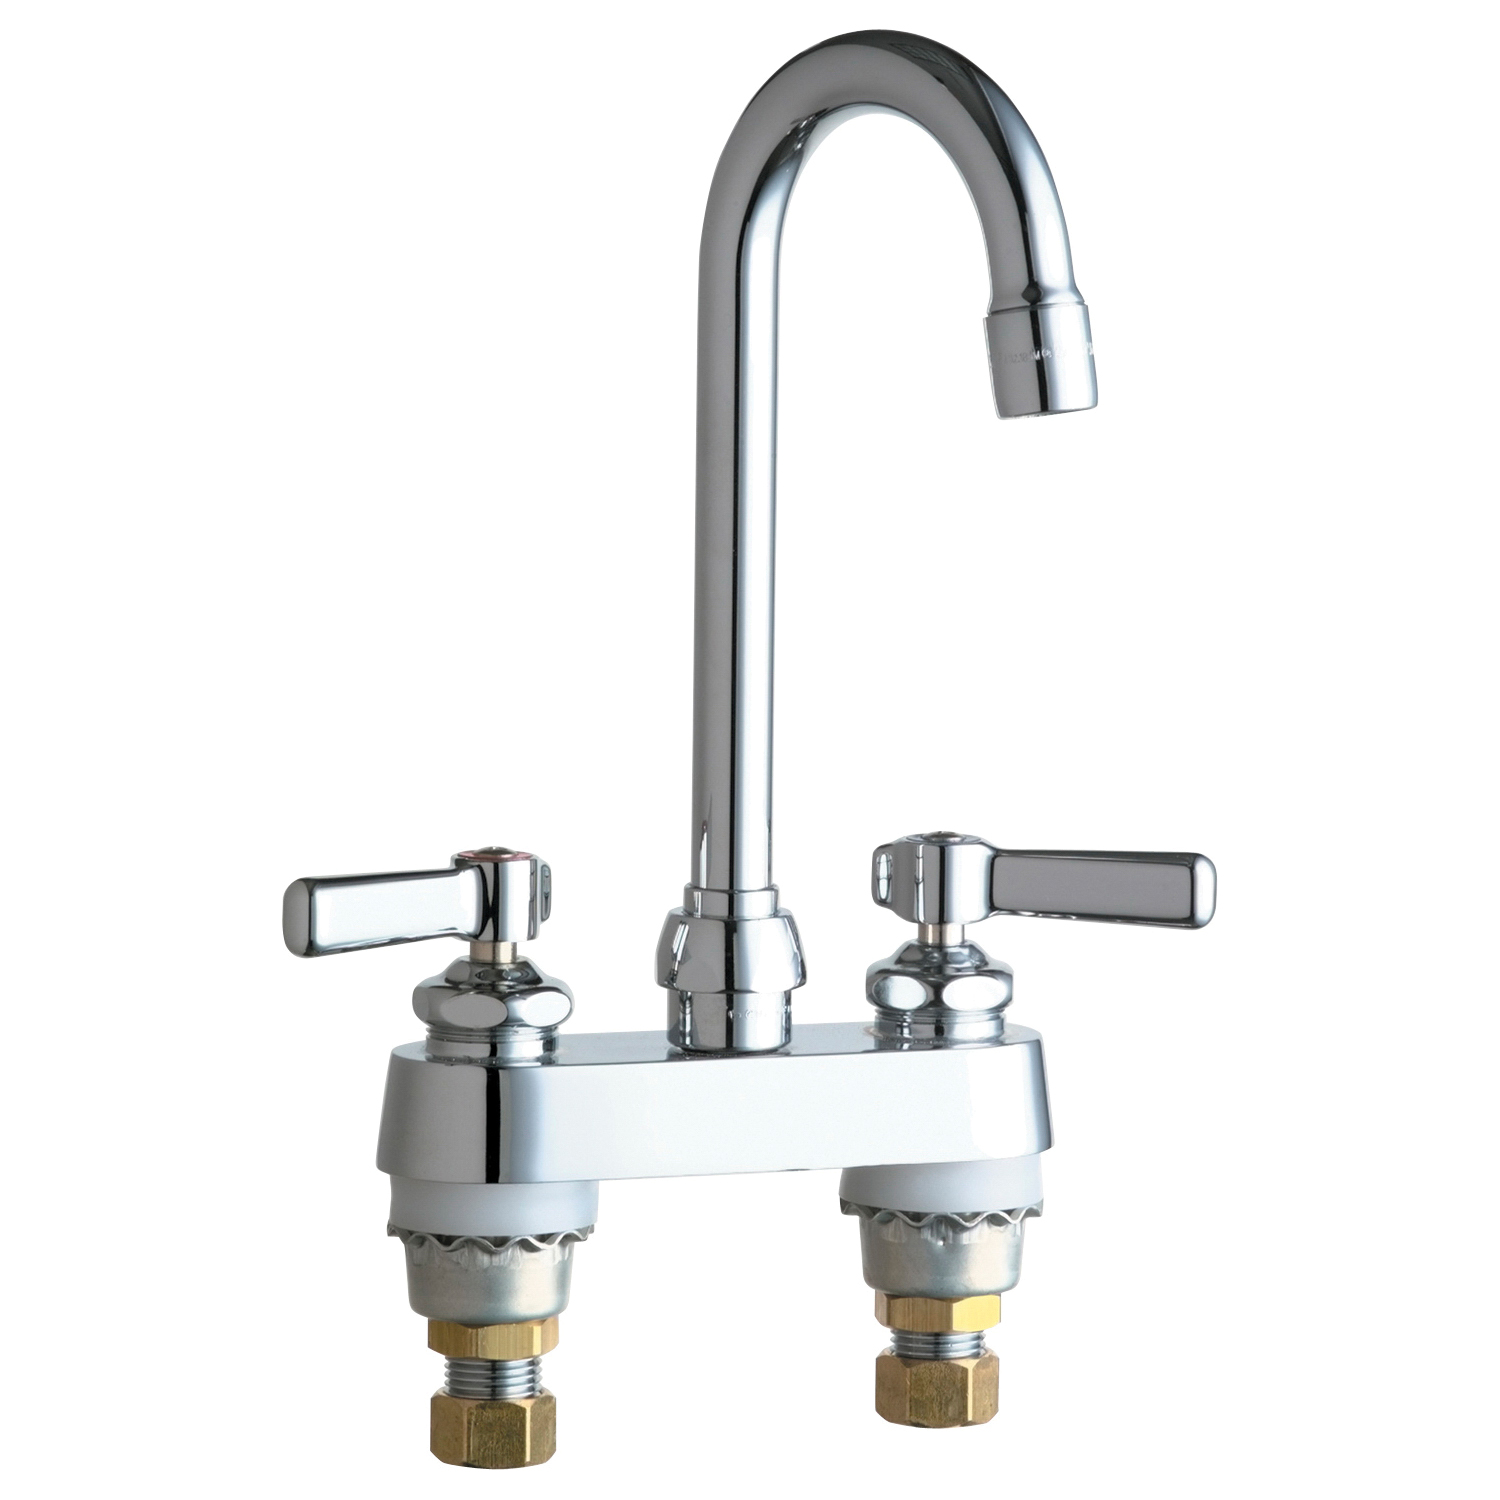 Chicago Faucet® 895-E35ABCP Lavatory Sink Faucet, Chrome Plated, 2 Handles, 1.5 gpm